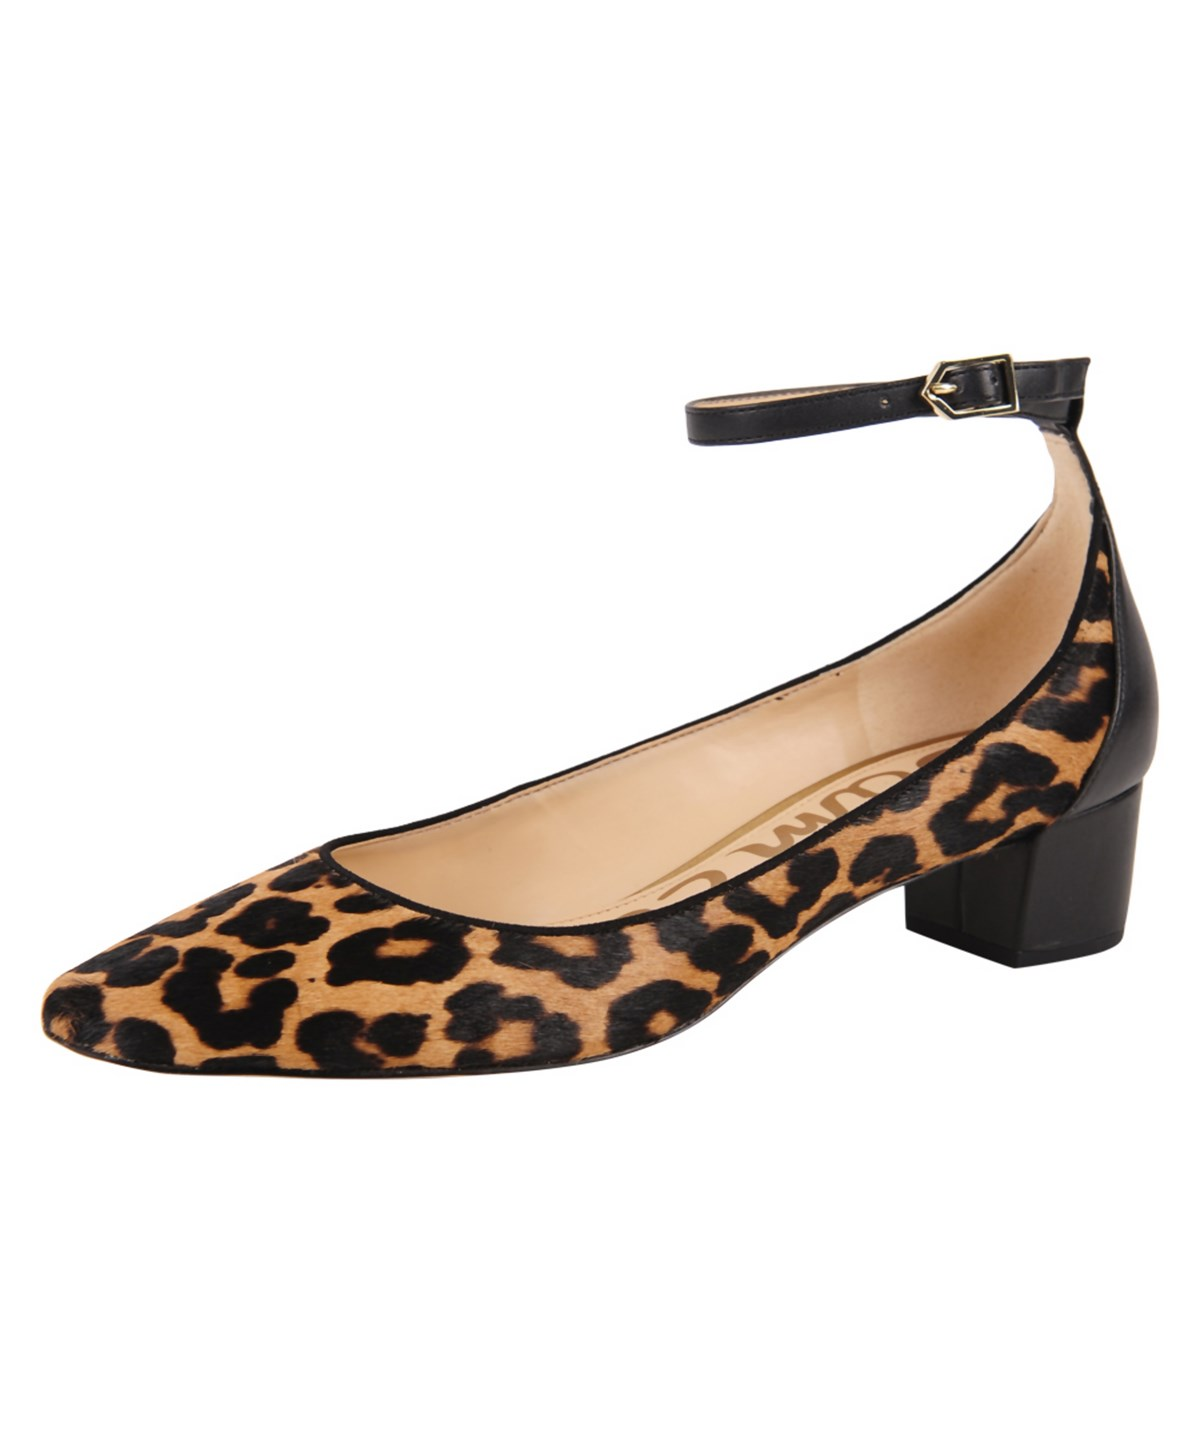 6b1c88aea Sam Edelman Lola Leather-Trimmed Leopard-Print Calf Hair Pumps In Leopard  Brahma